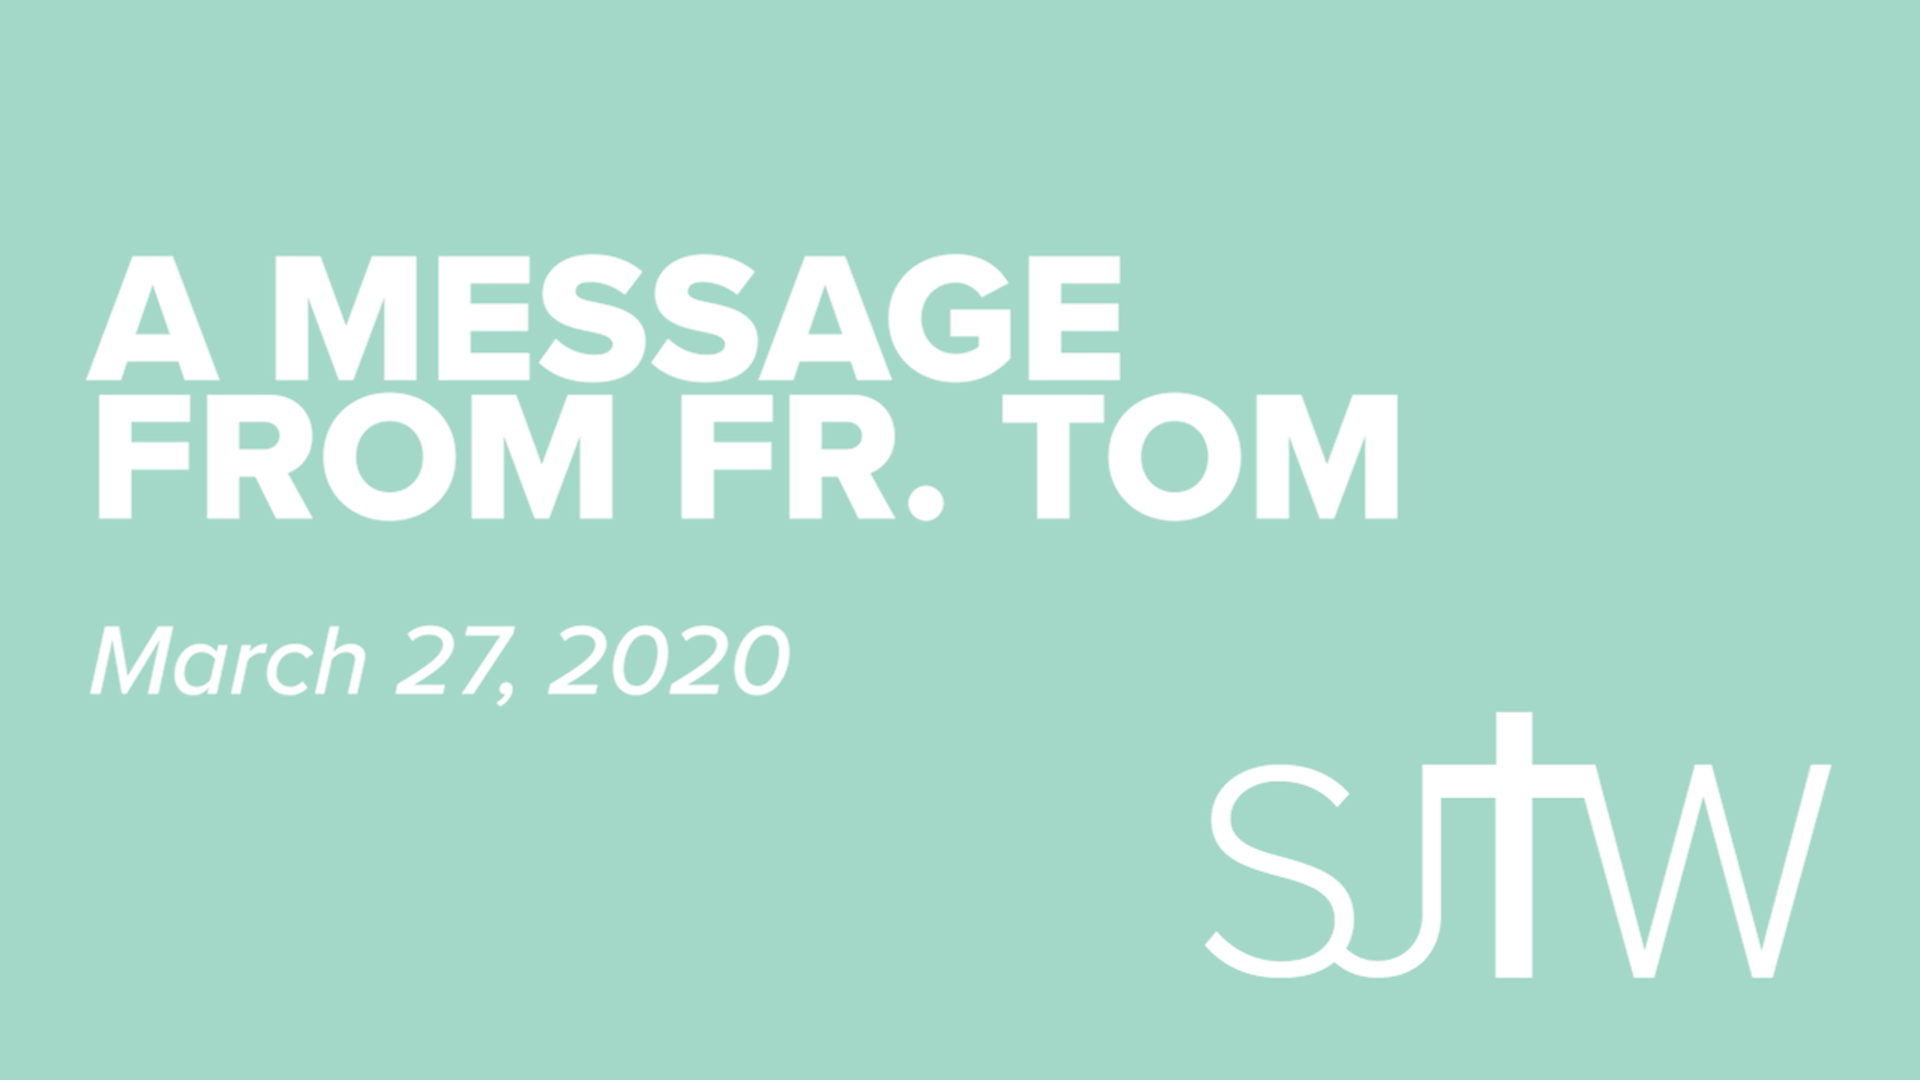 Fr. Tom's Video Message for March 27